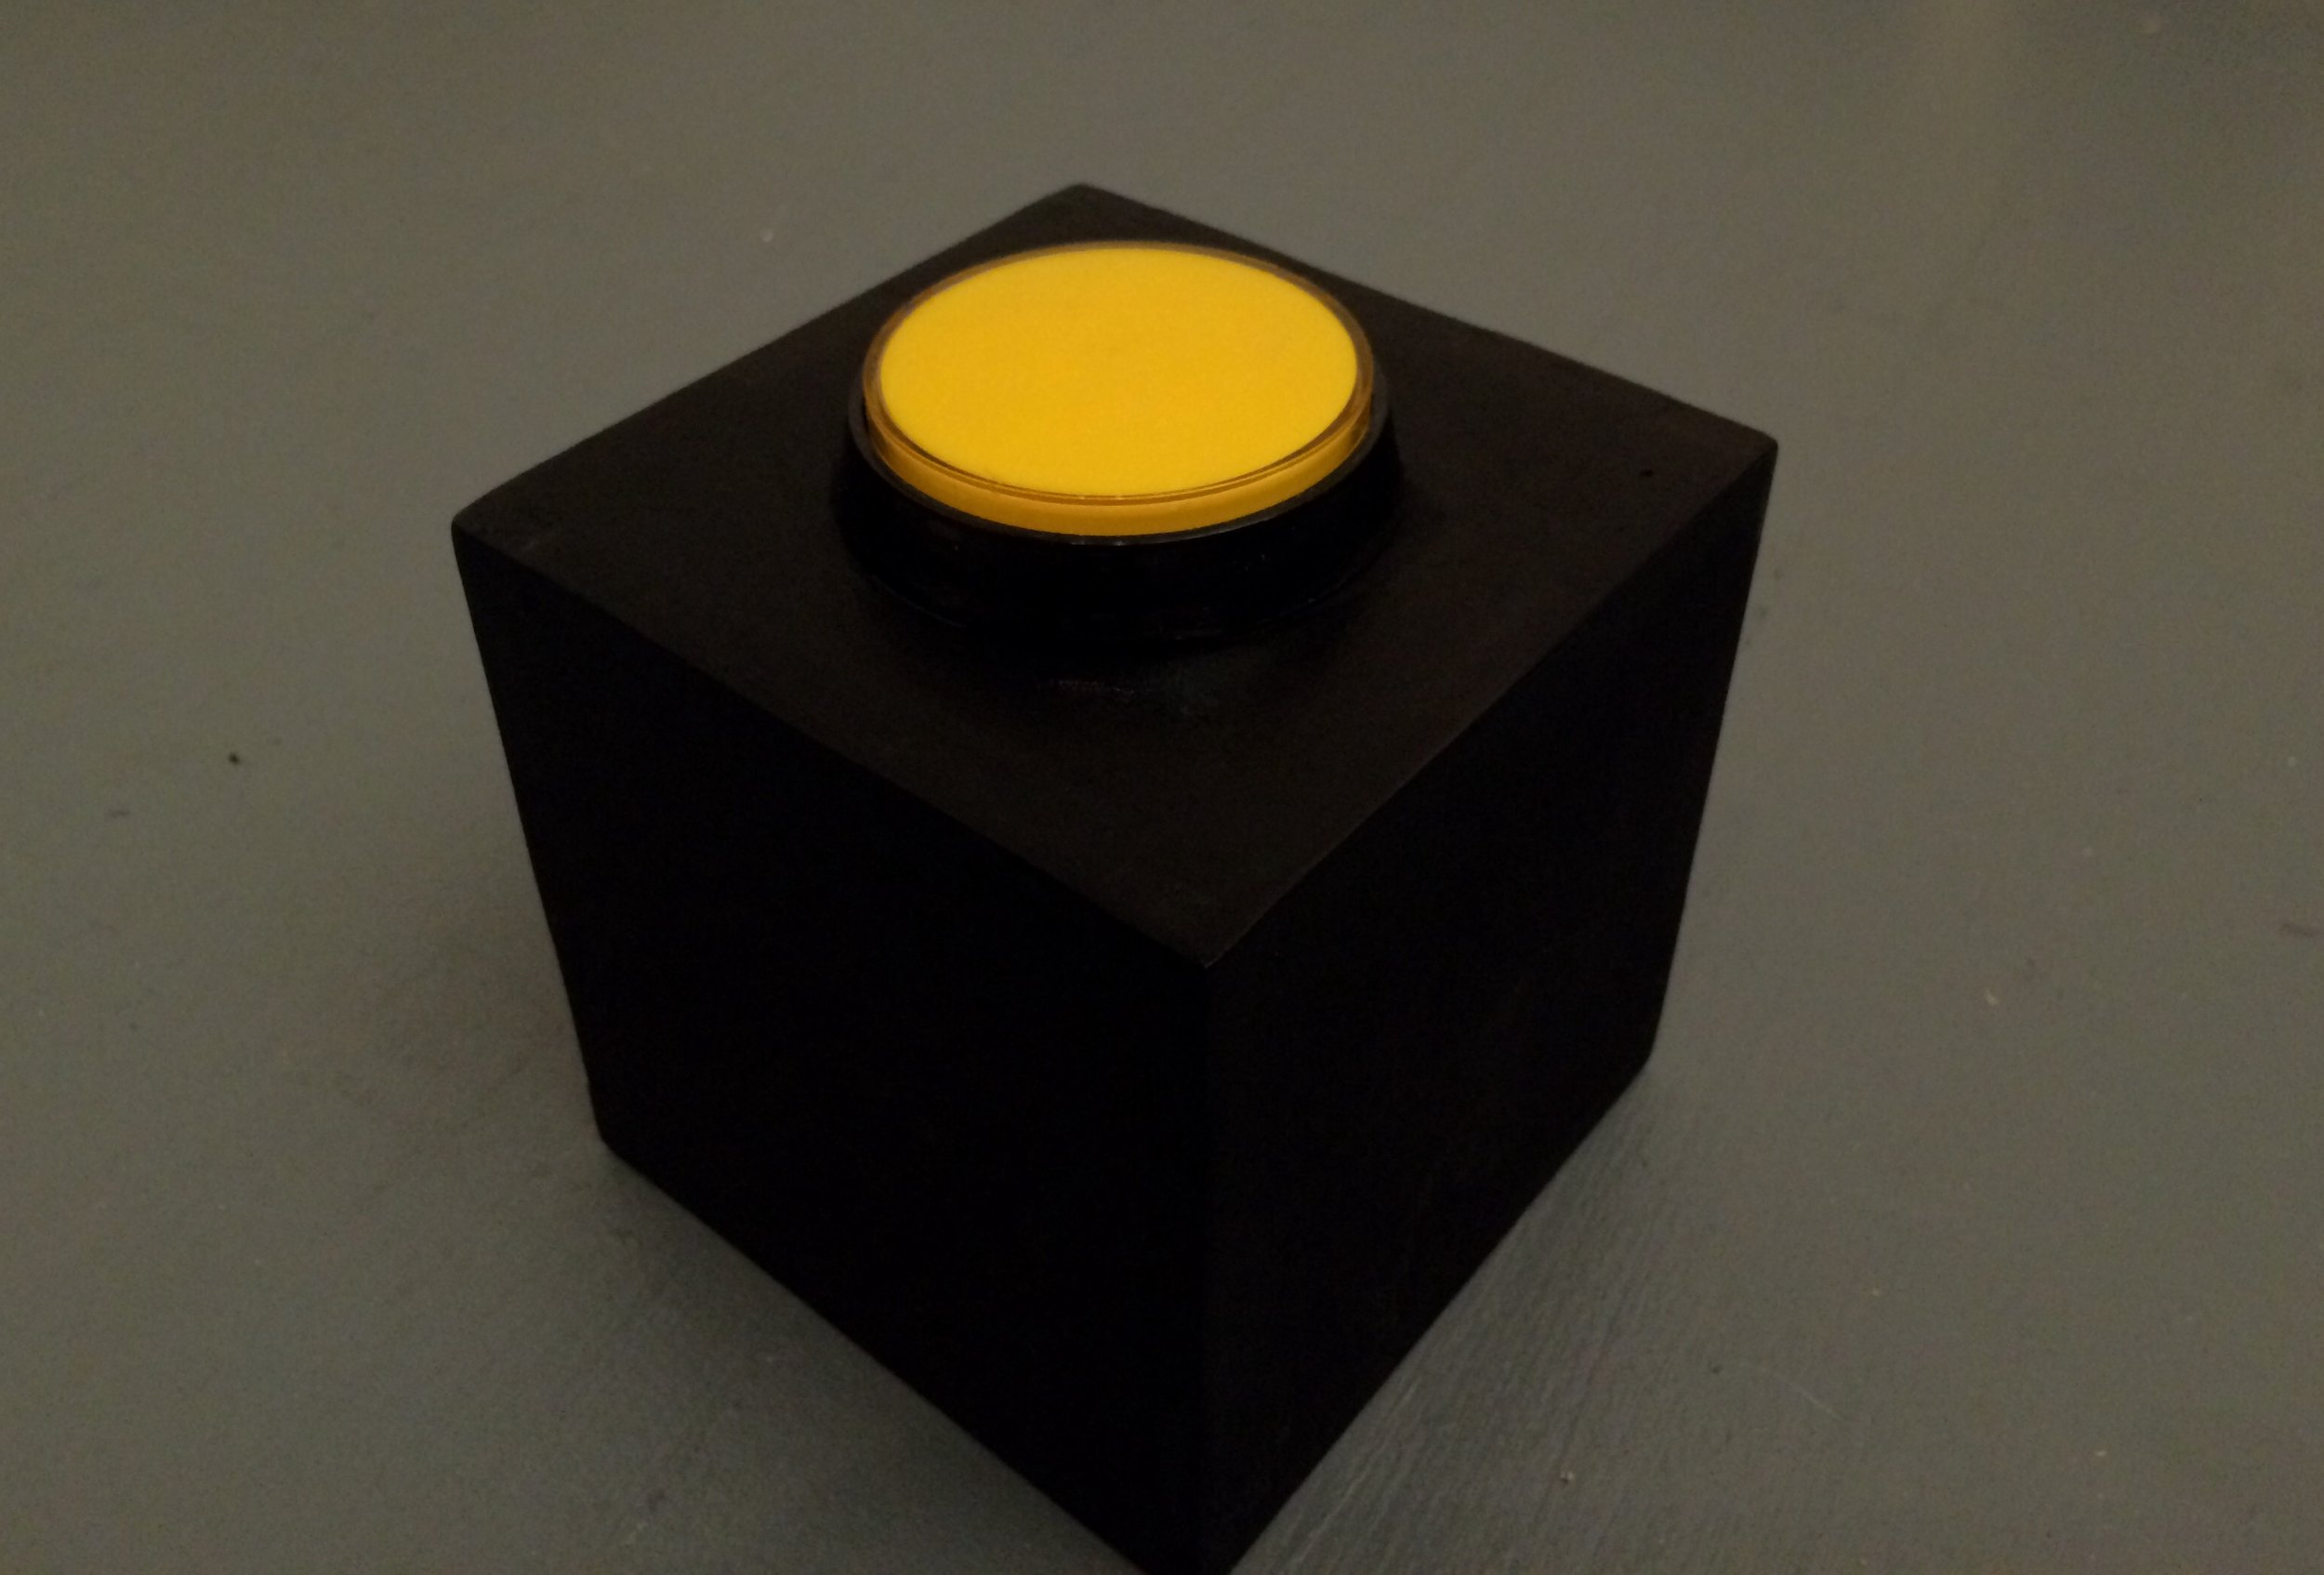 A device made to collect the rhythm that a person press the button within 10 seconds.